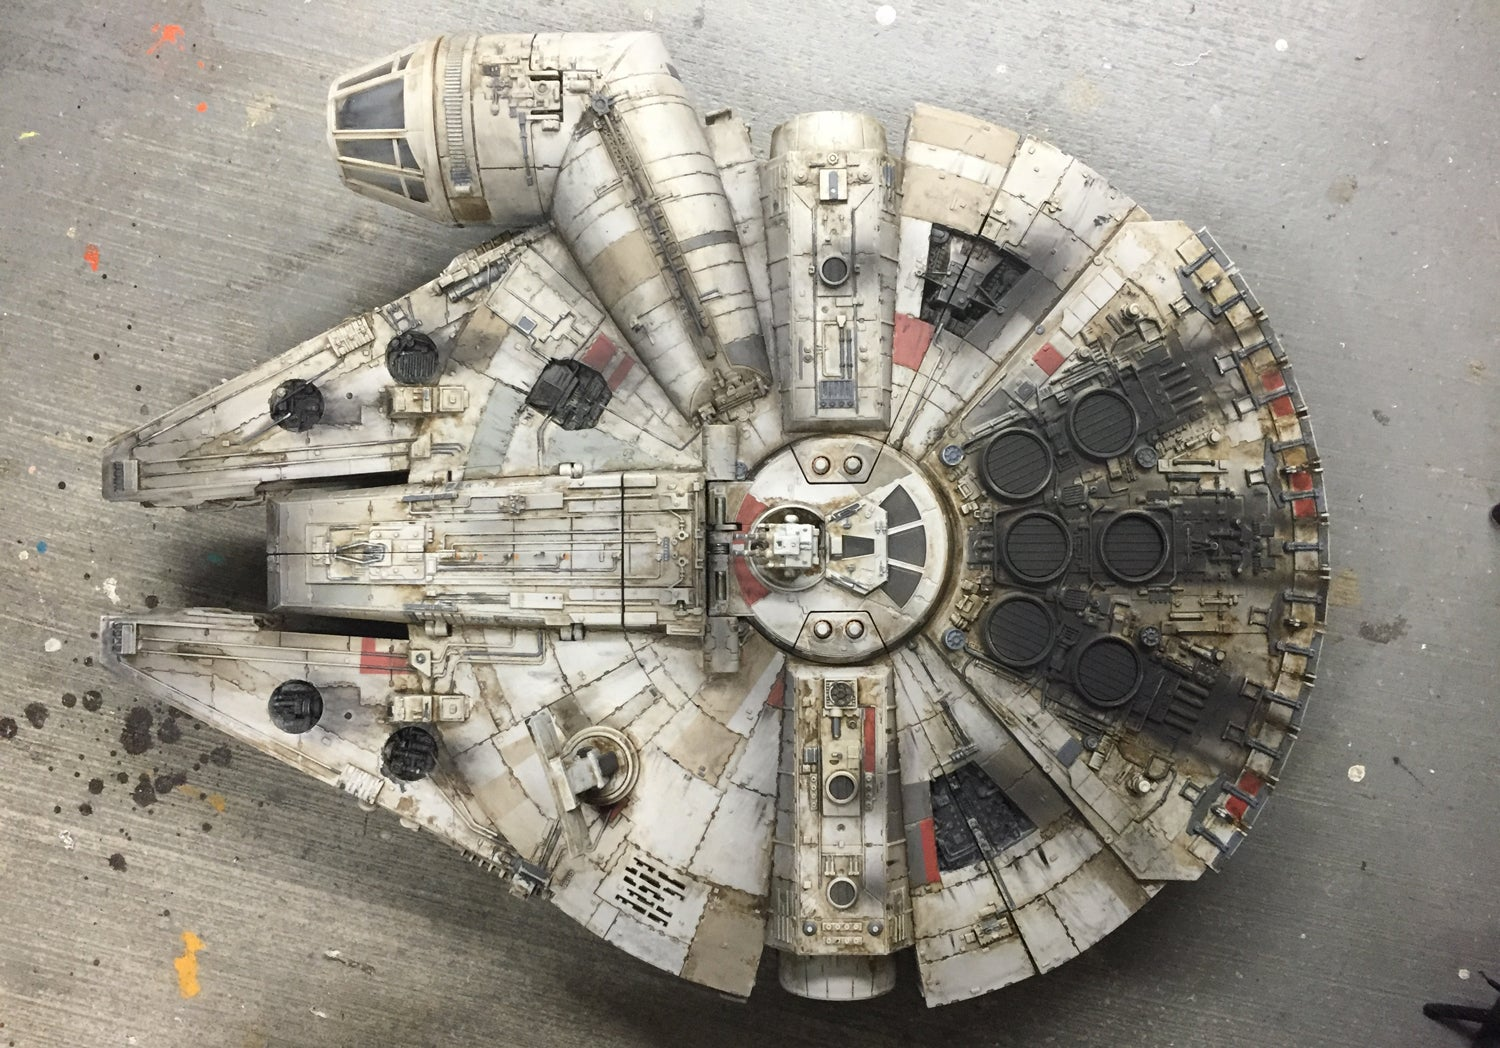 A Masterful Paint Job Makes This Millennium Falcon Toy Look Like a Star Wars Movie Prop